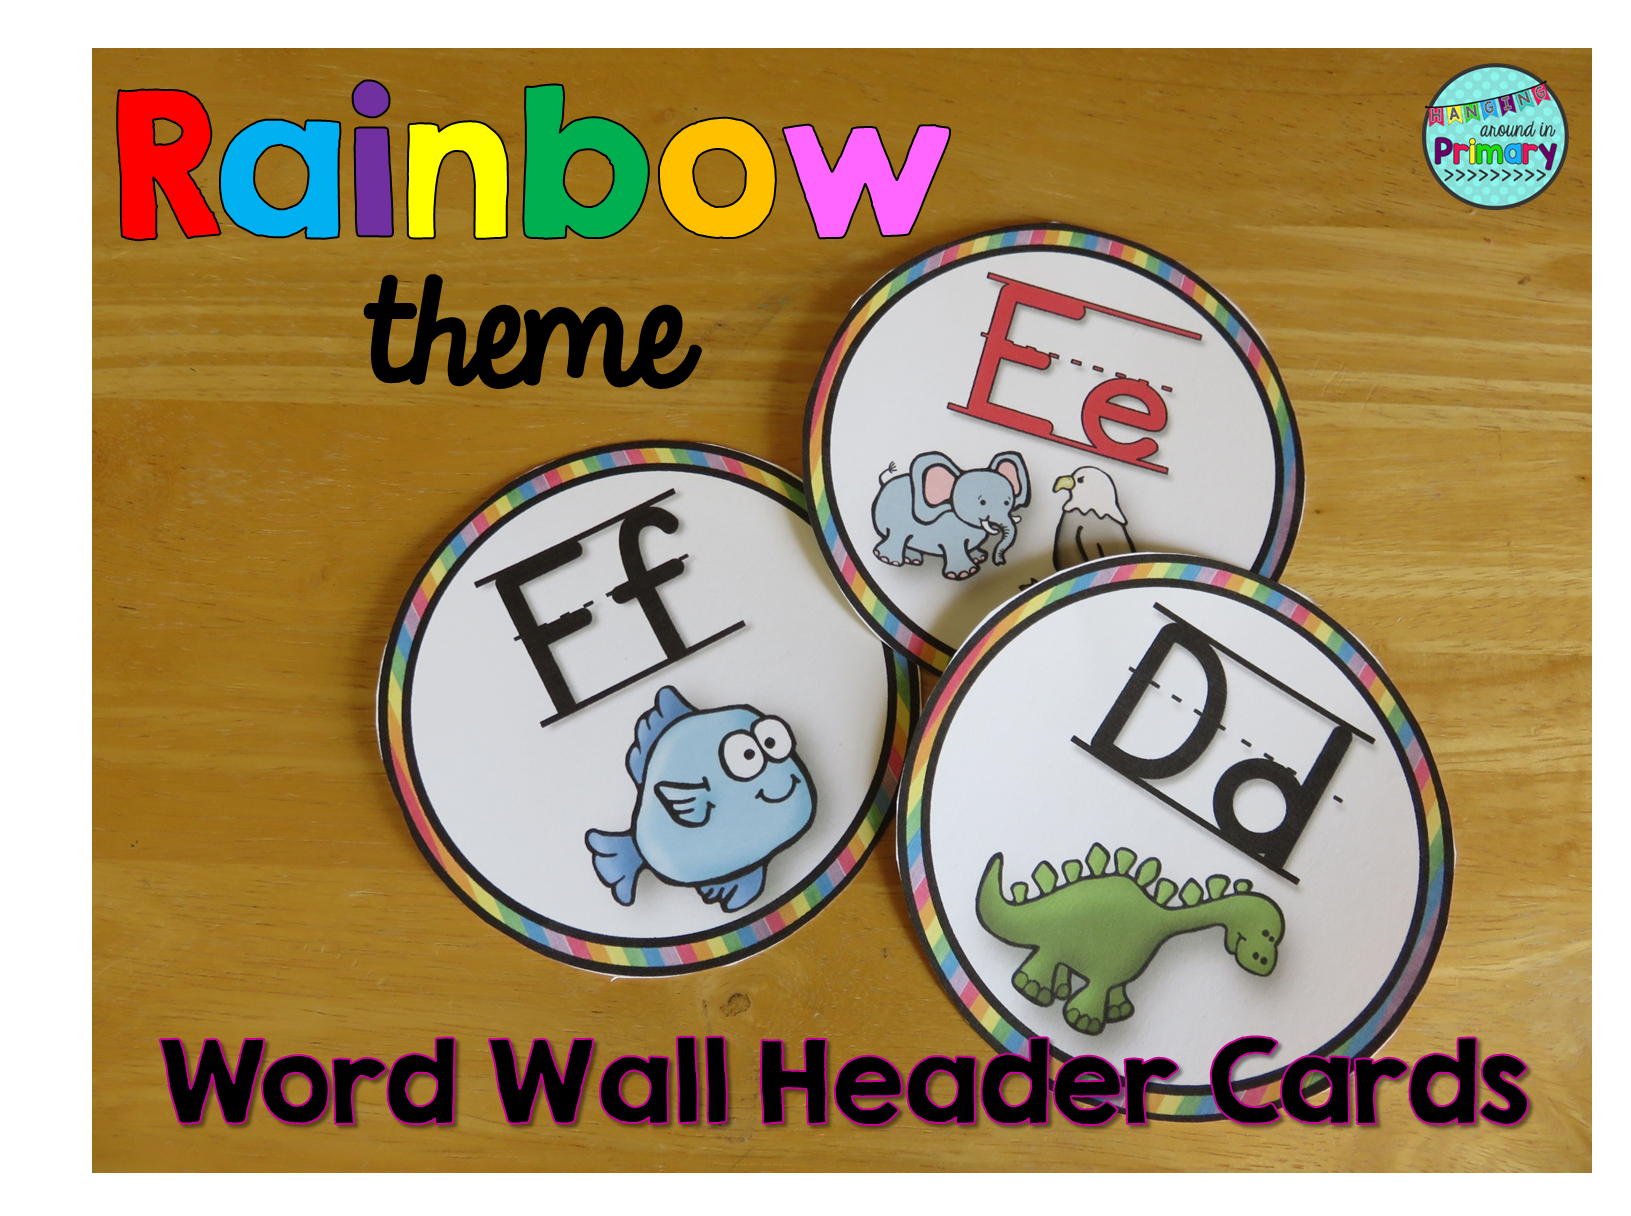 Word Wall Letters Best Word Wall Letters  Headers  Rainbow  Word Wall Headers Inspiration